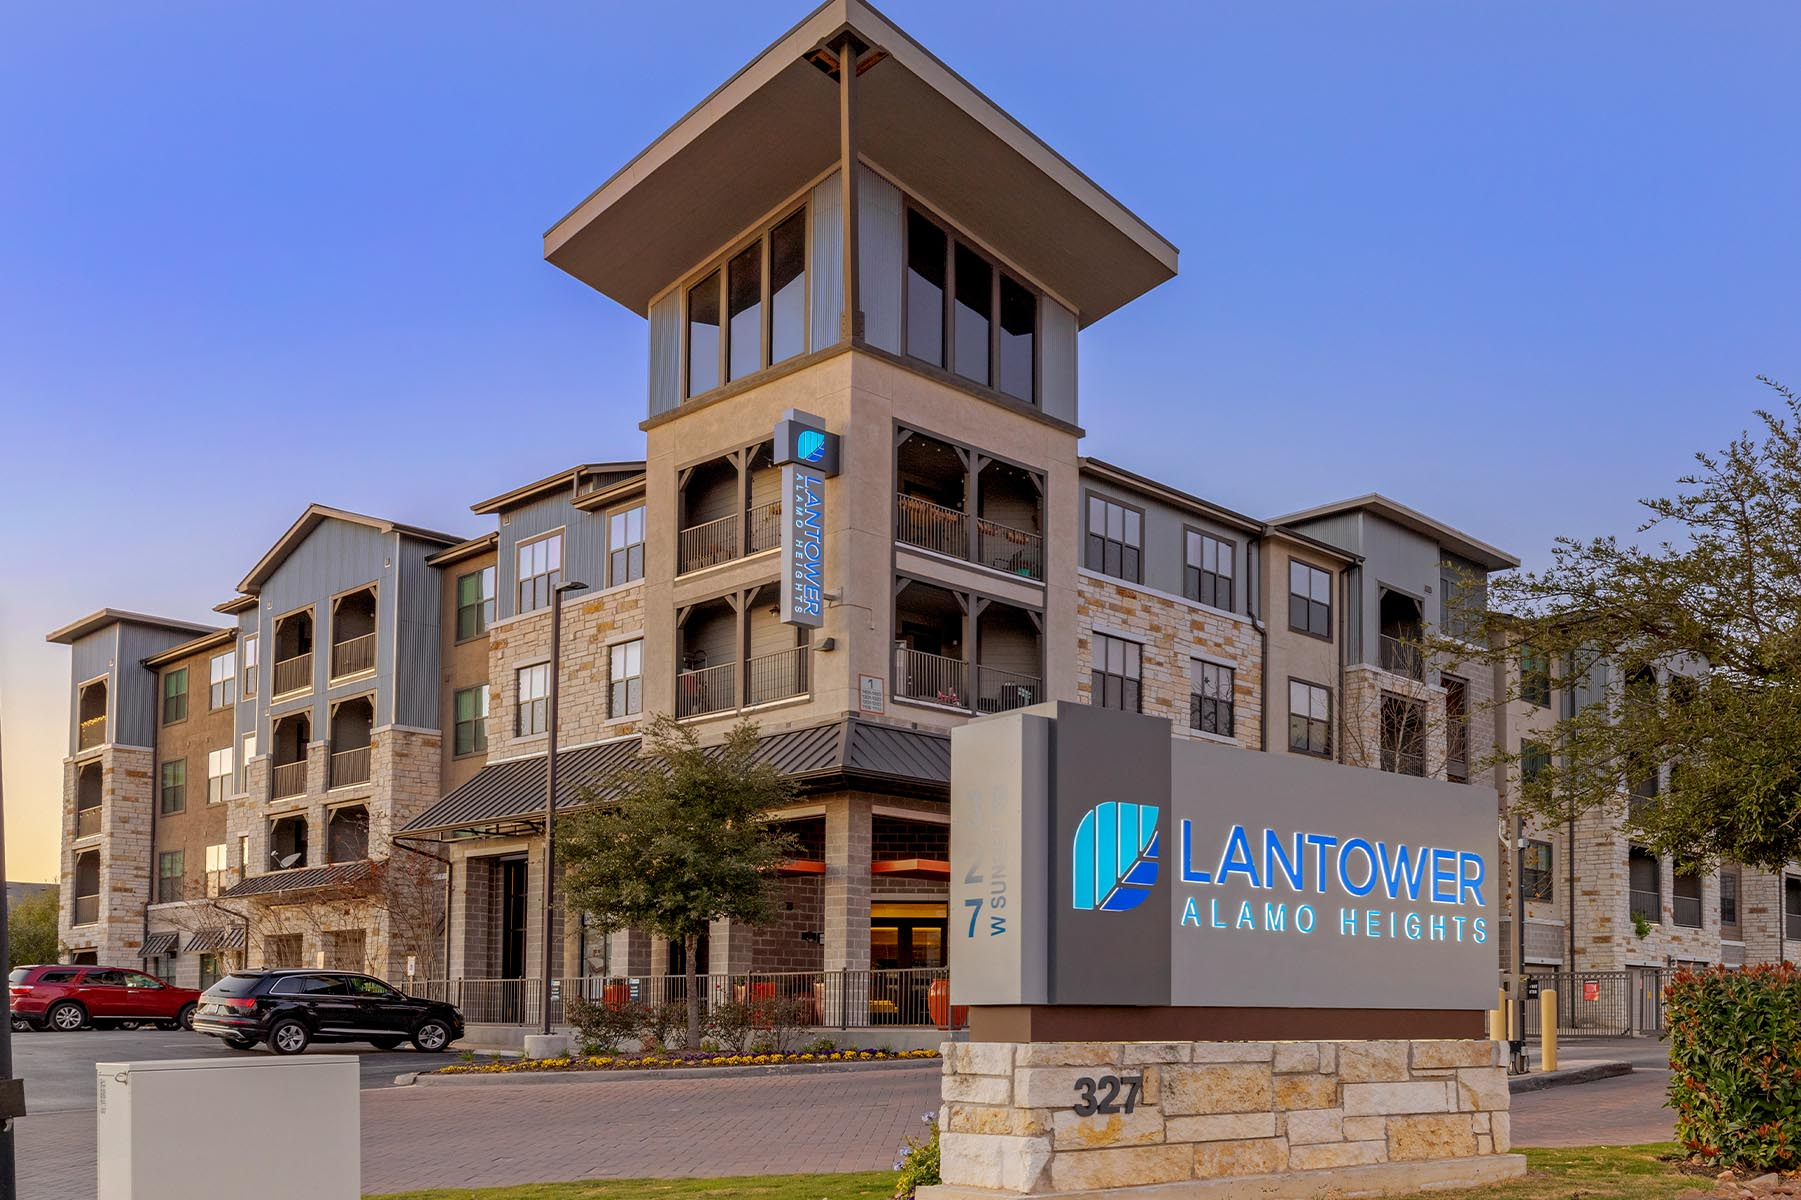 lantower alamo heights